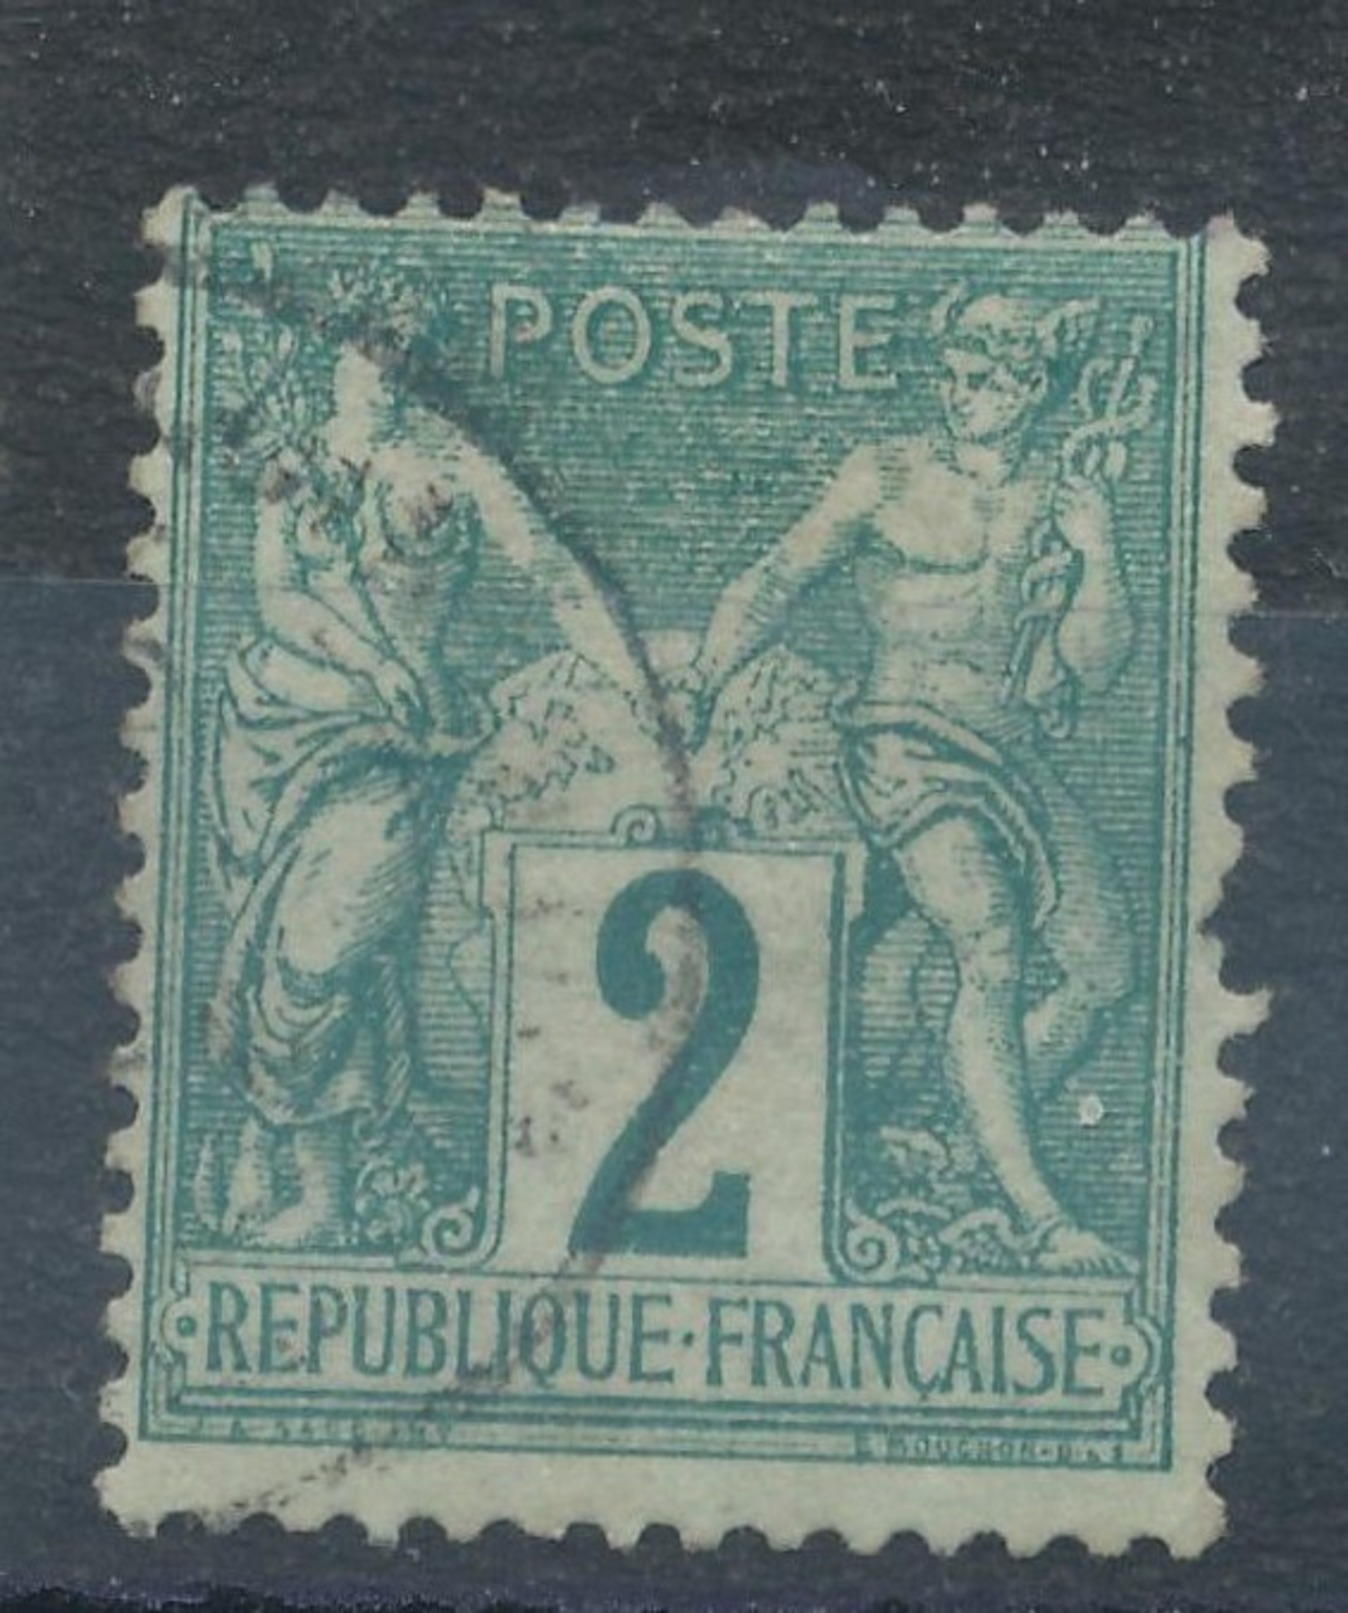 N°62 CACHET A DATE. - 1876-1878 Sage (Type I)